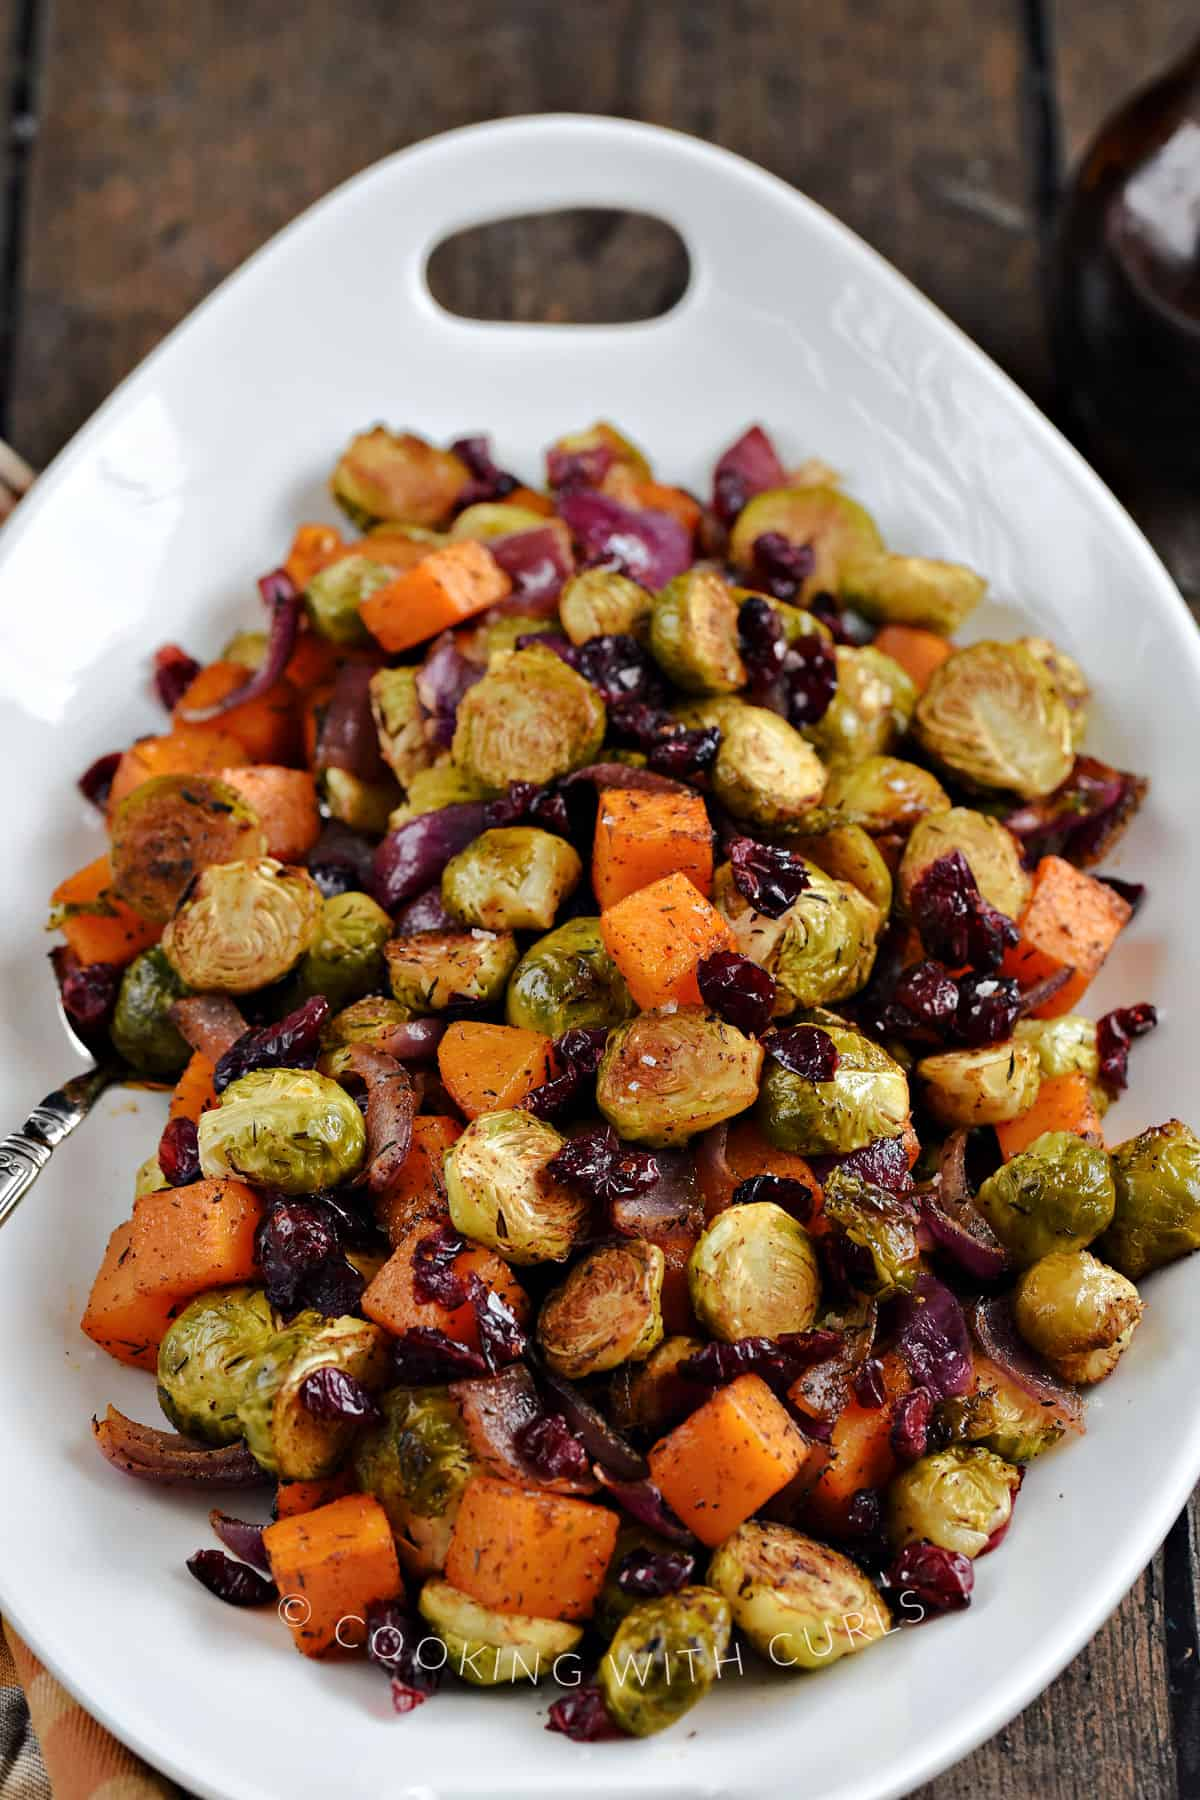 Close-up image of Oven Roasted Brussels Sprouts and Squash with Dried Cranberries in a large platter.